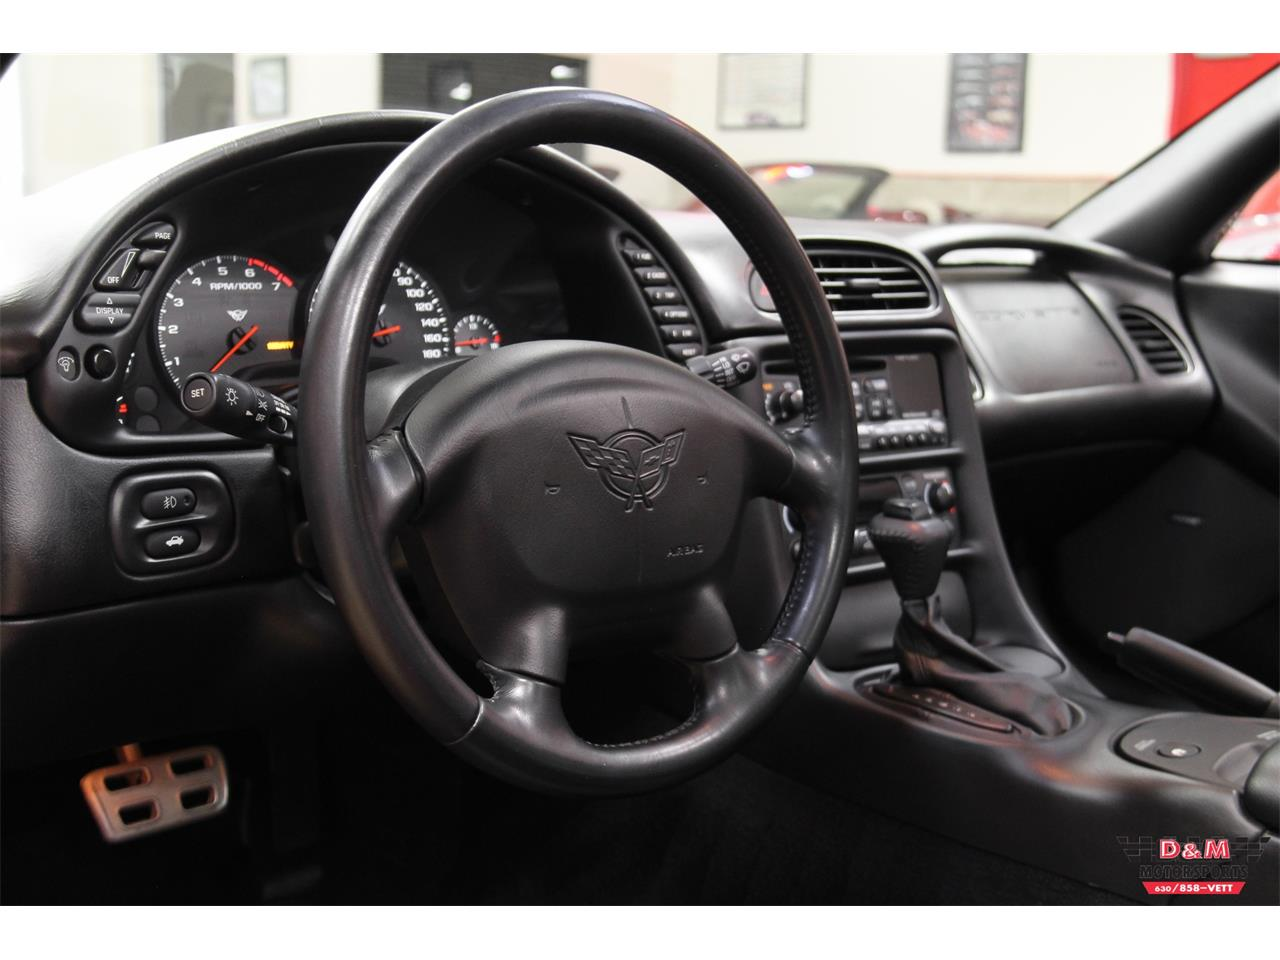 Large Picture of 2000 Corvette located in Glen Ellyn Illinois Offered by D & M Motorsports - LVA3